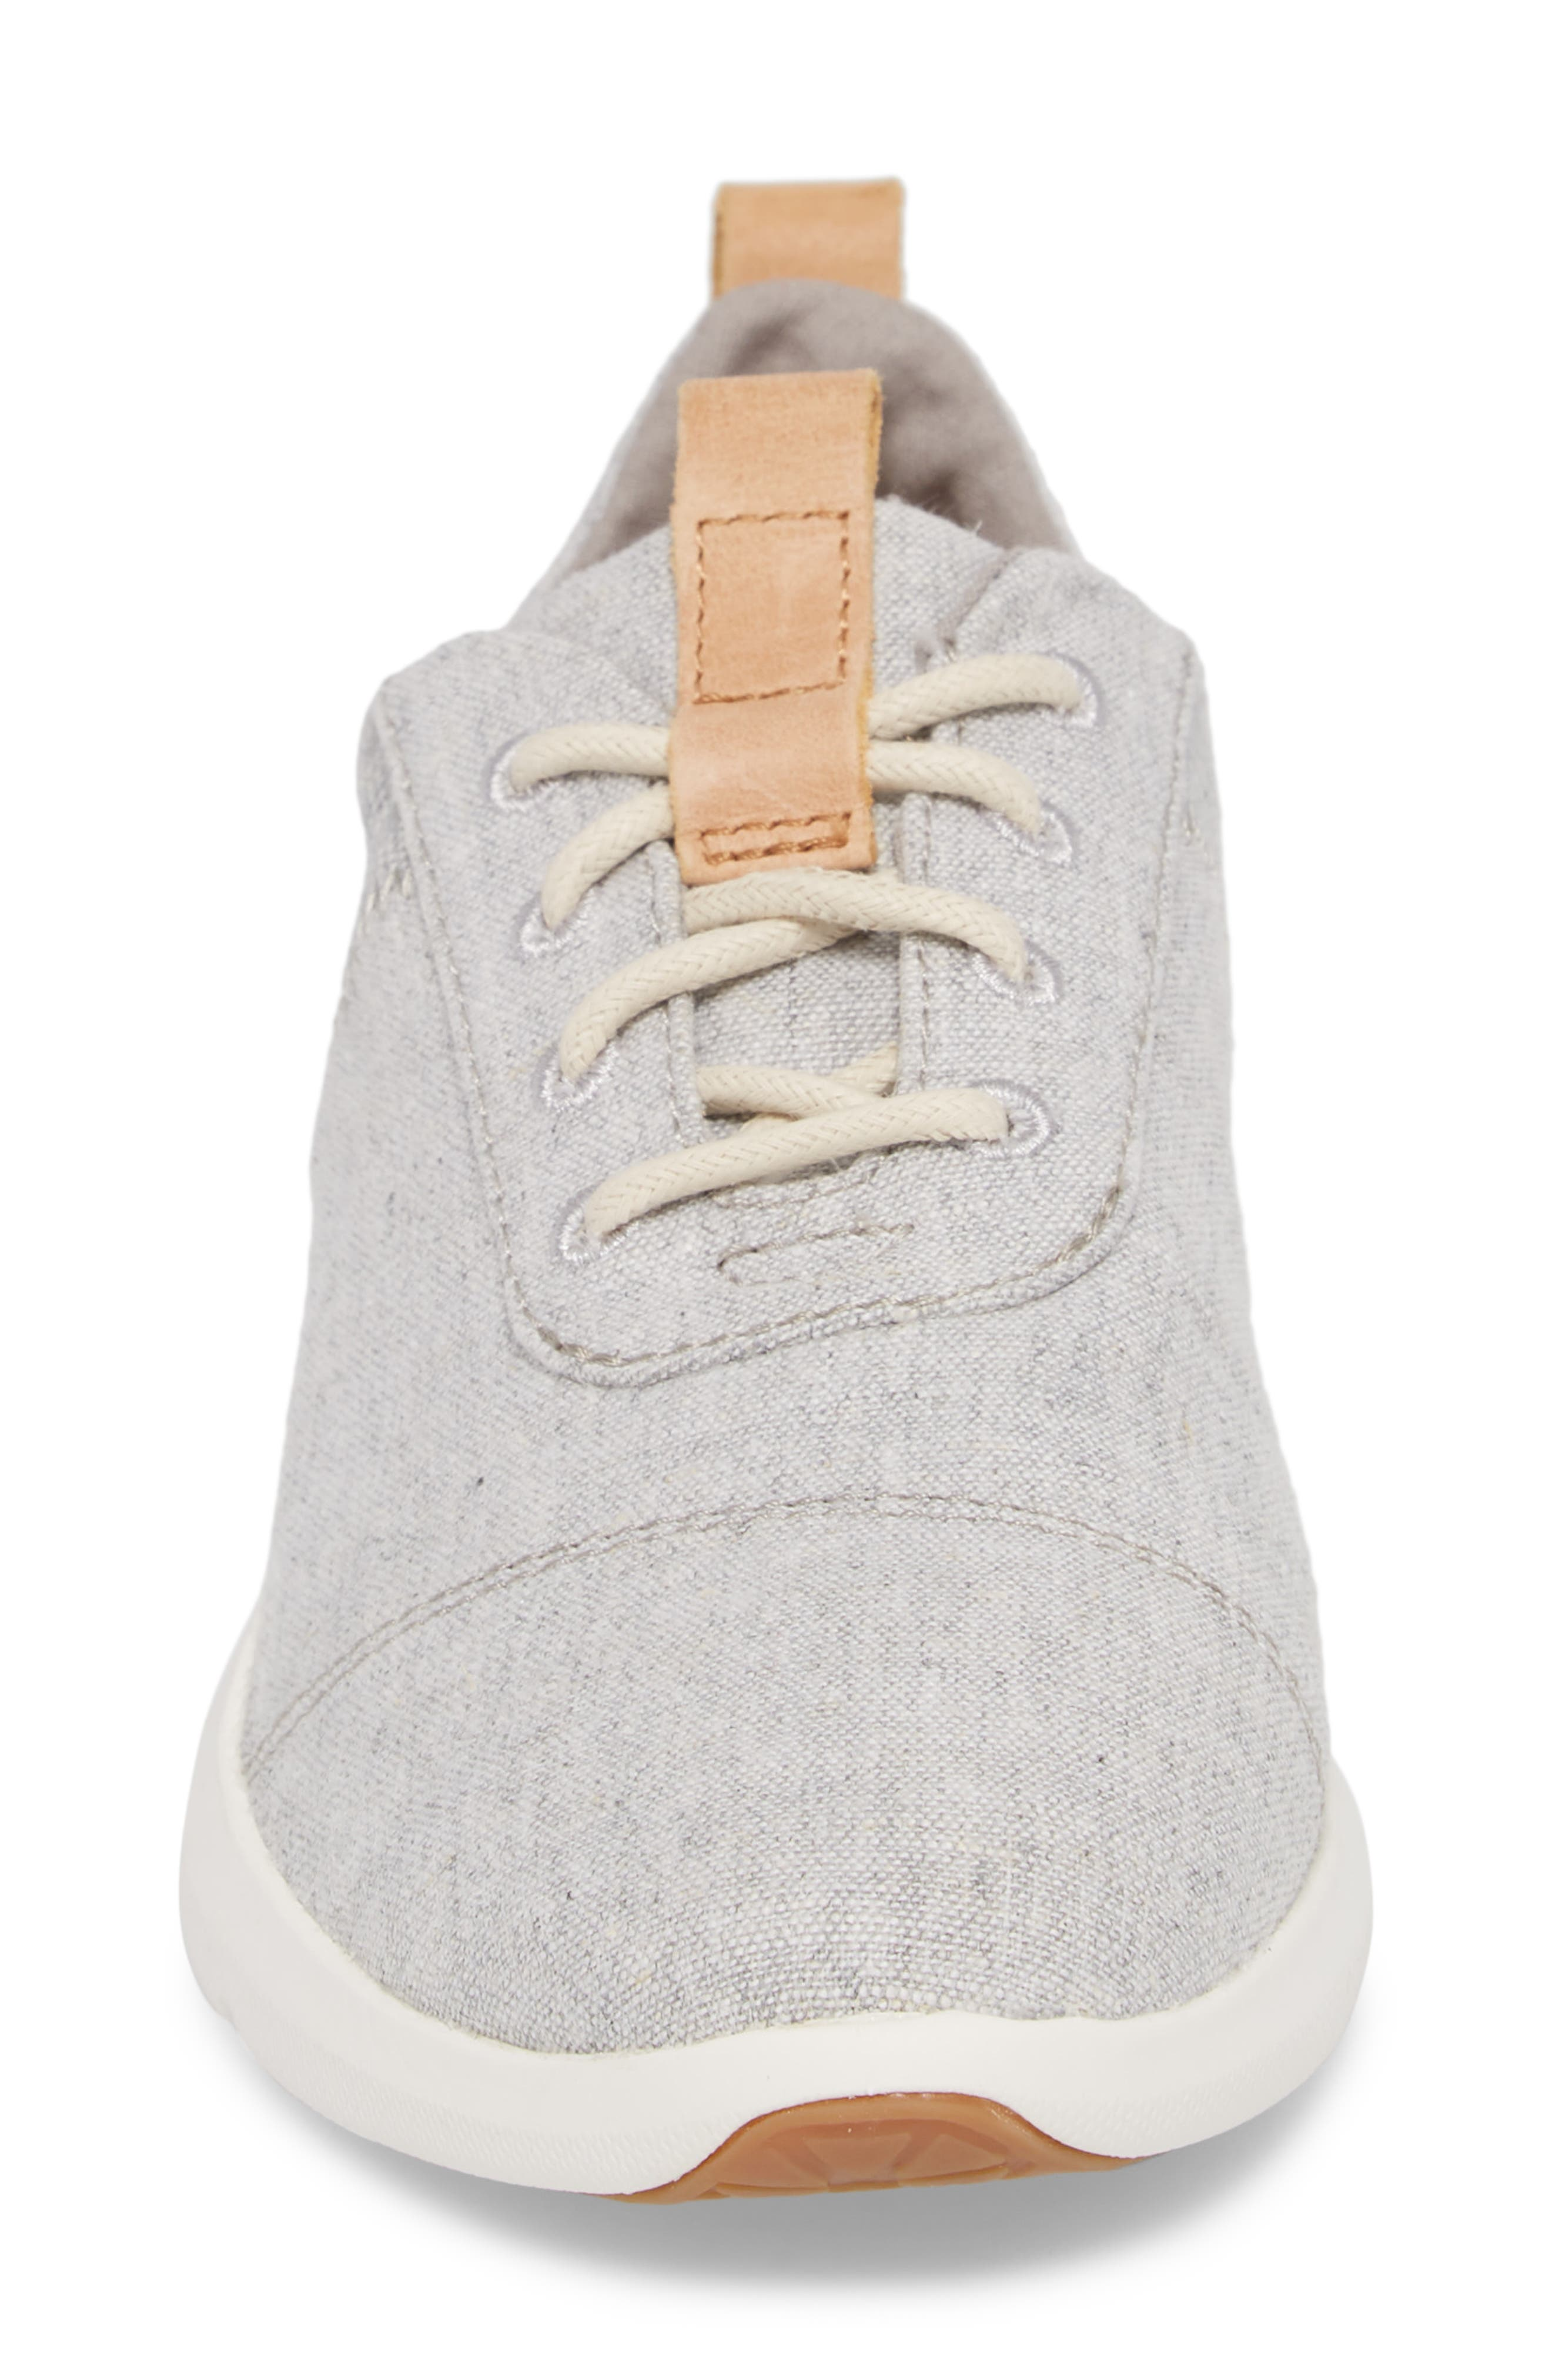 Cabrillo Sneaker,                             Alternate thumbnail 4, color,                             Drizzle Grey Chambray Mix